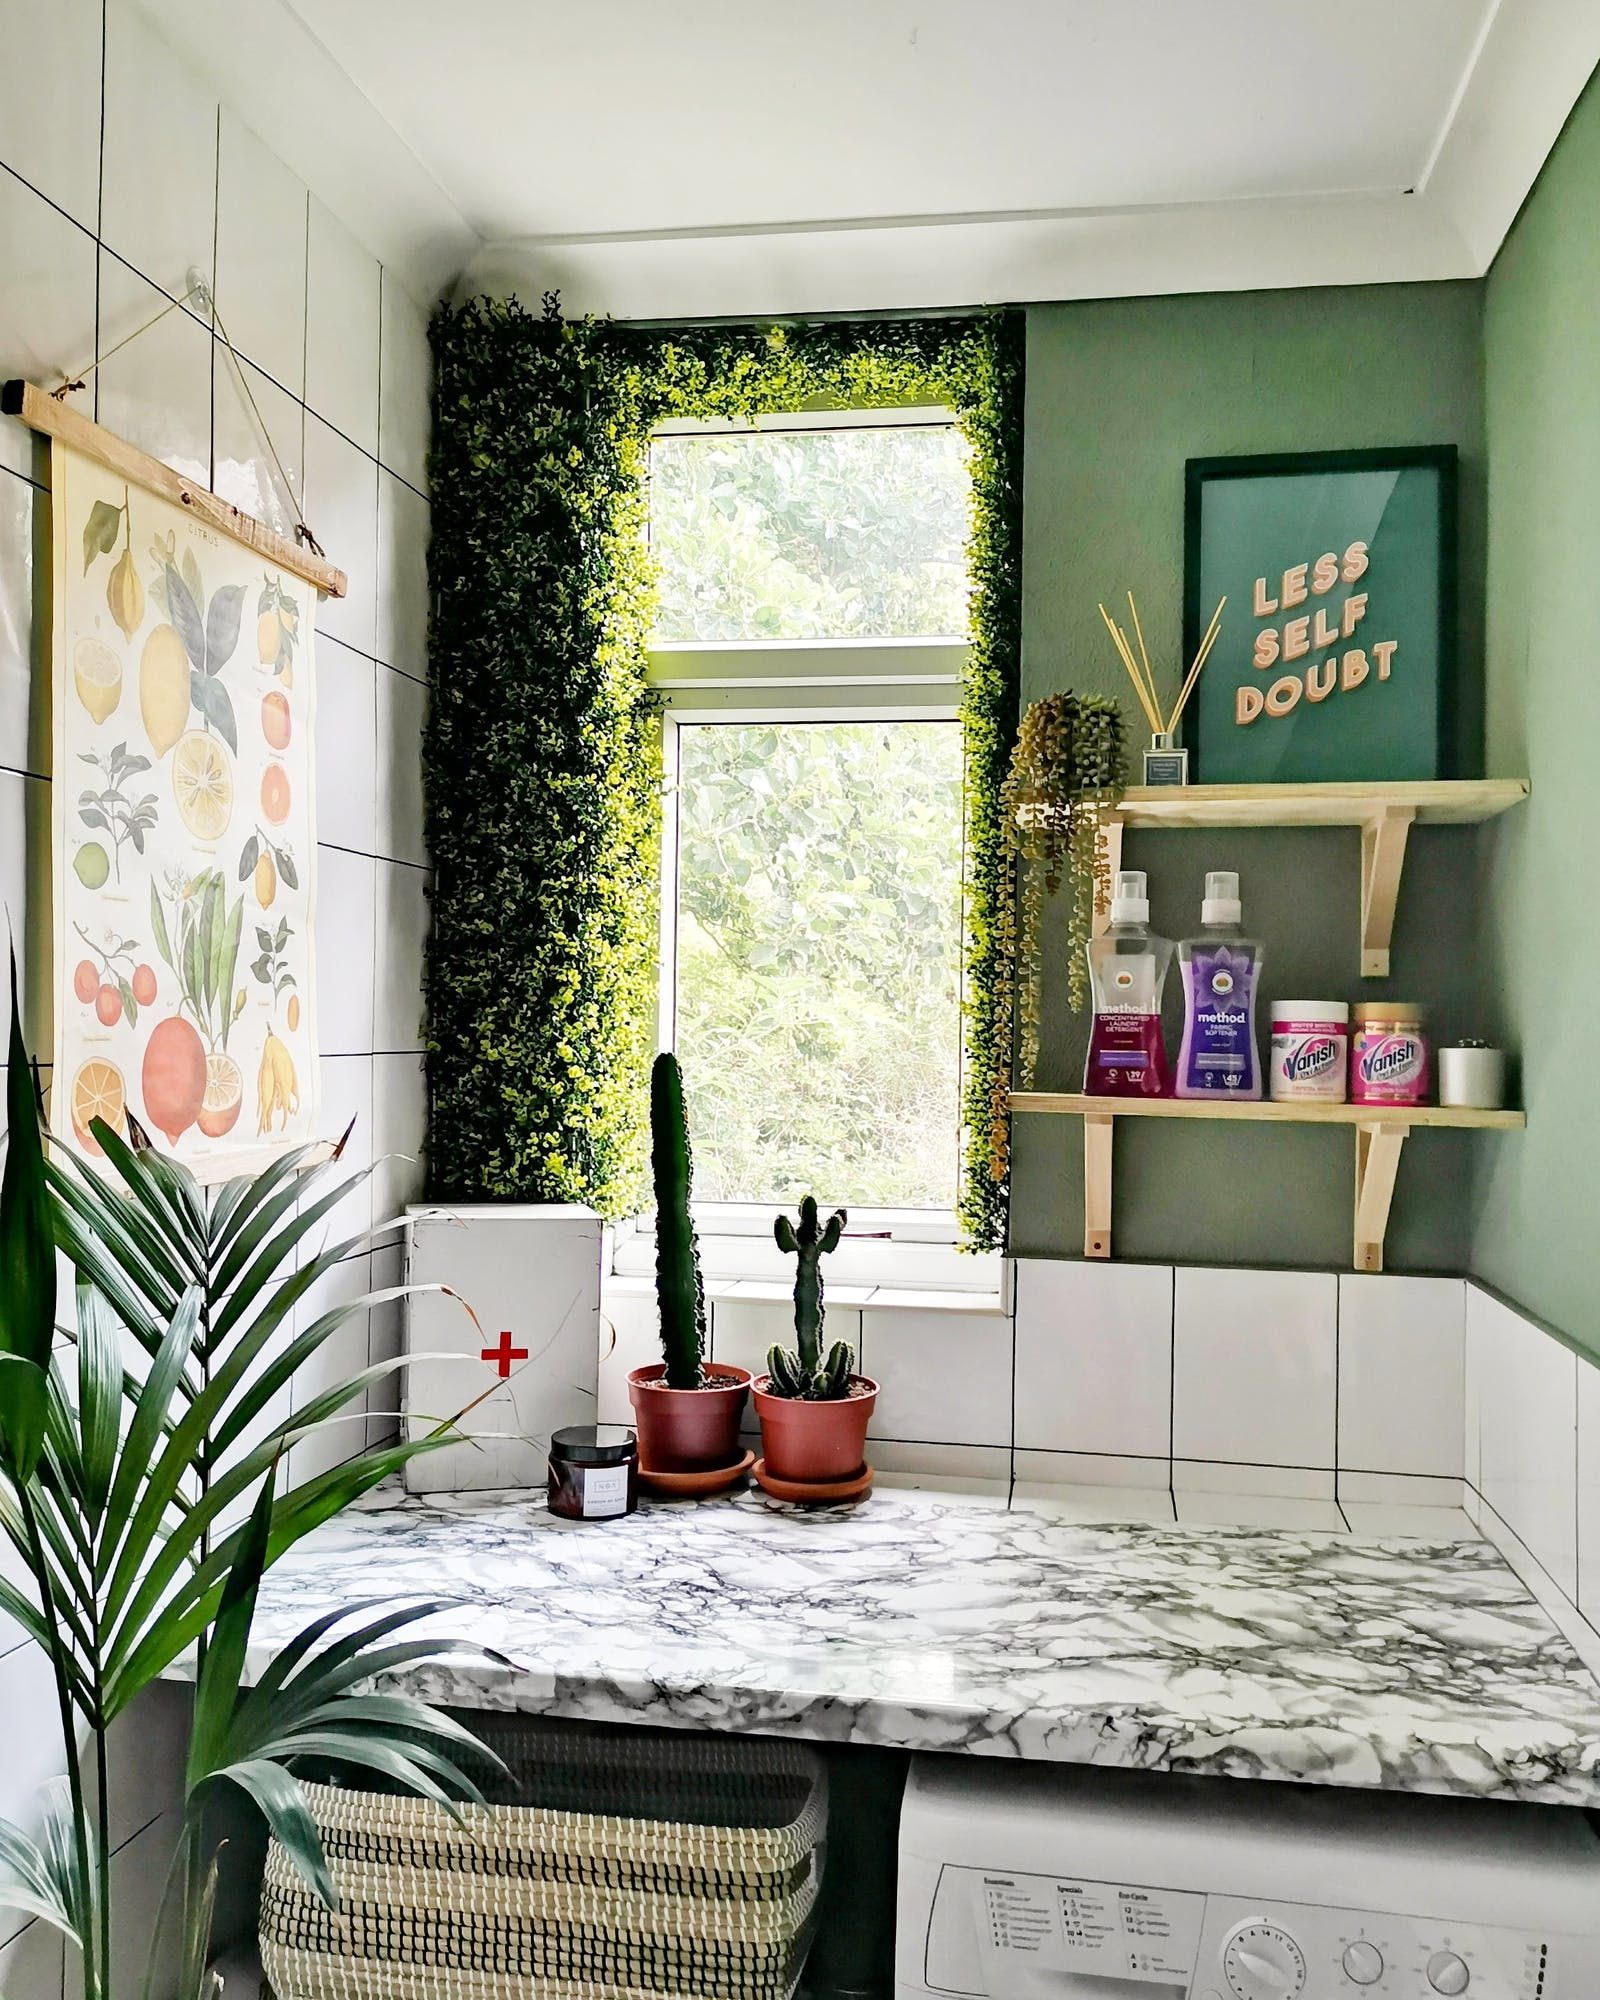 Laundry room painted in light green with a marble top and faux greenery window feature